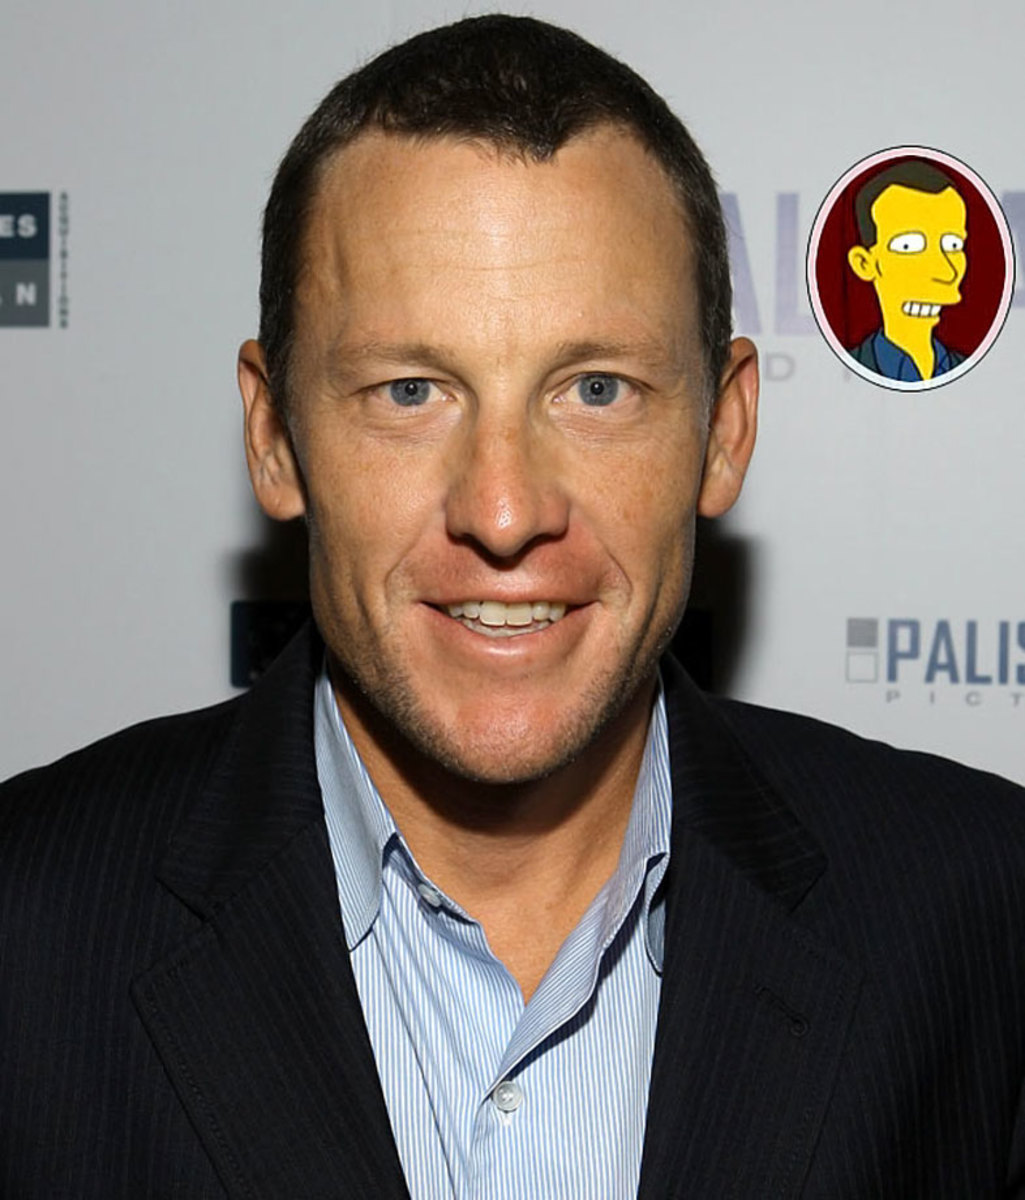 lance-armstrong-the-simpsons.jpg